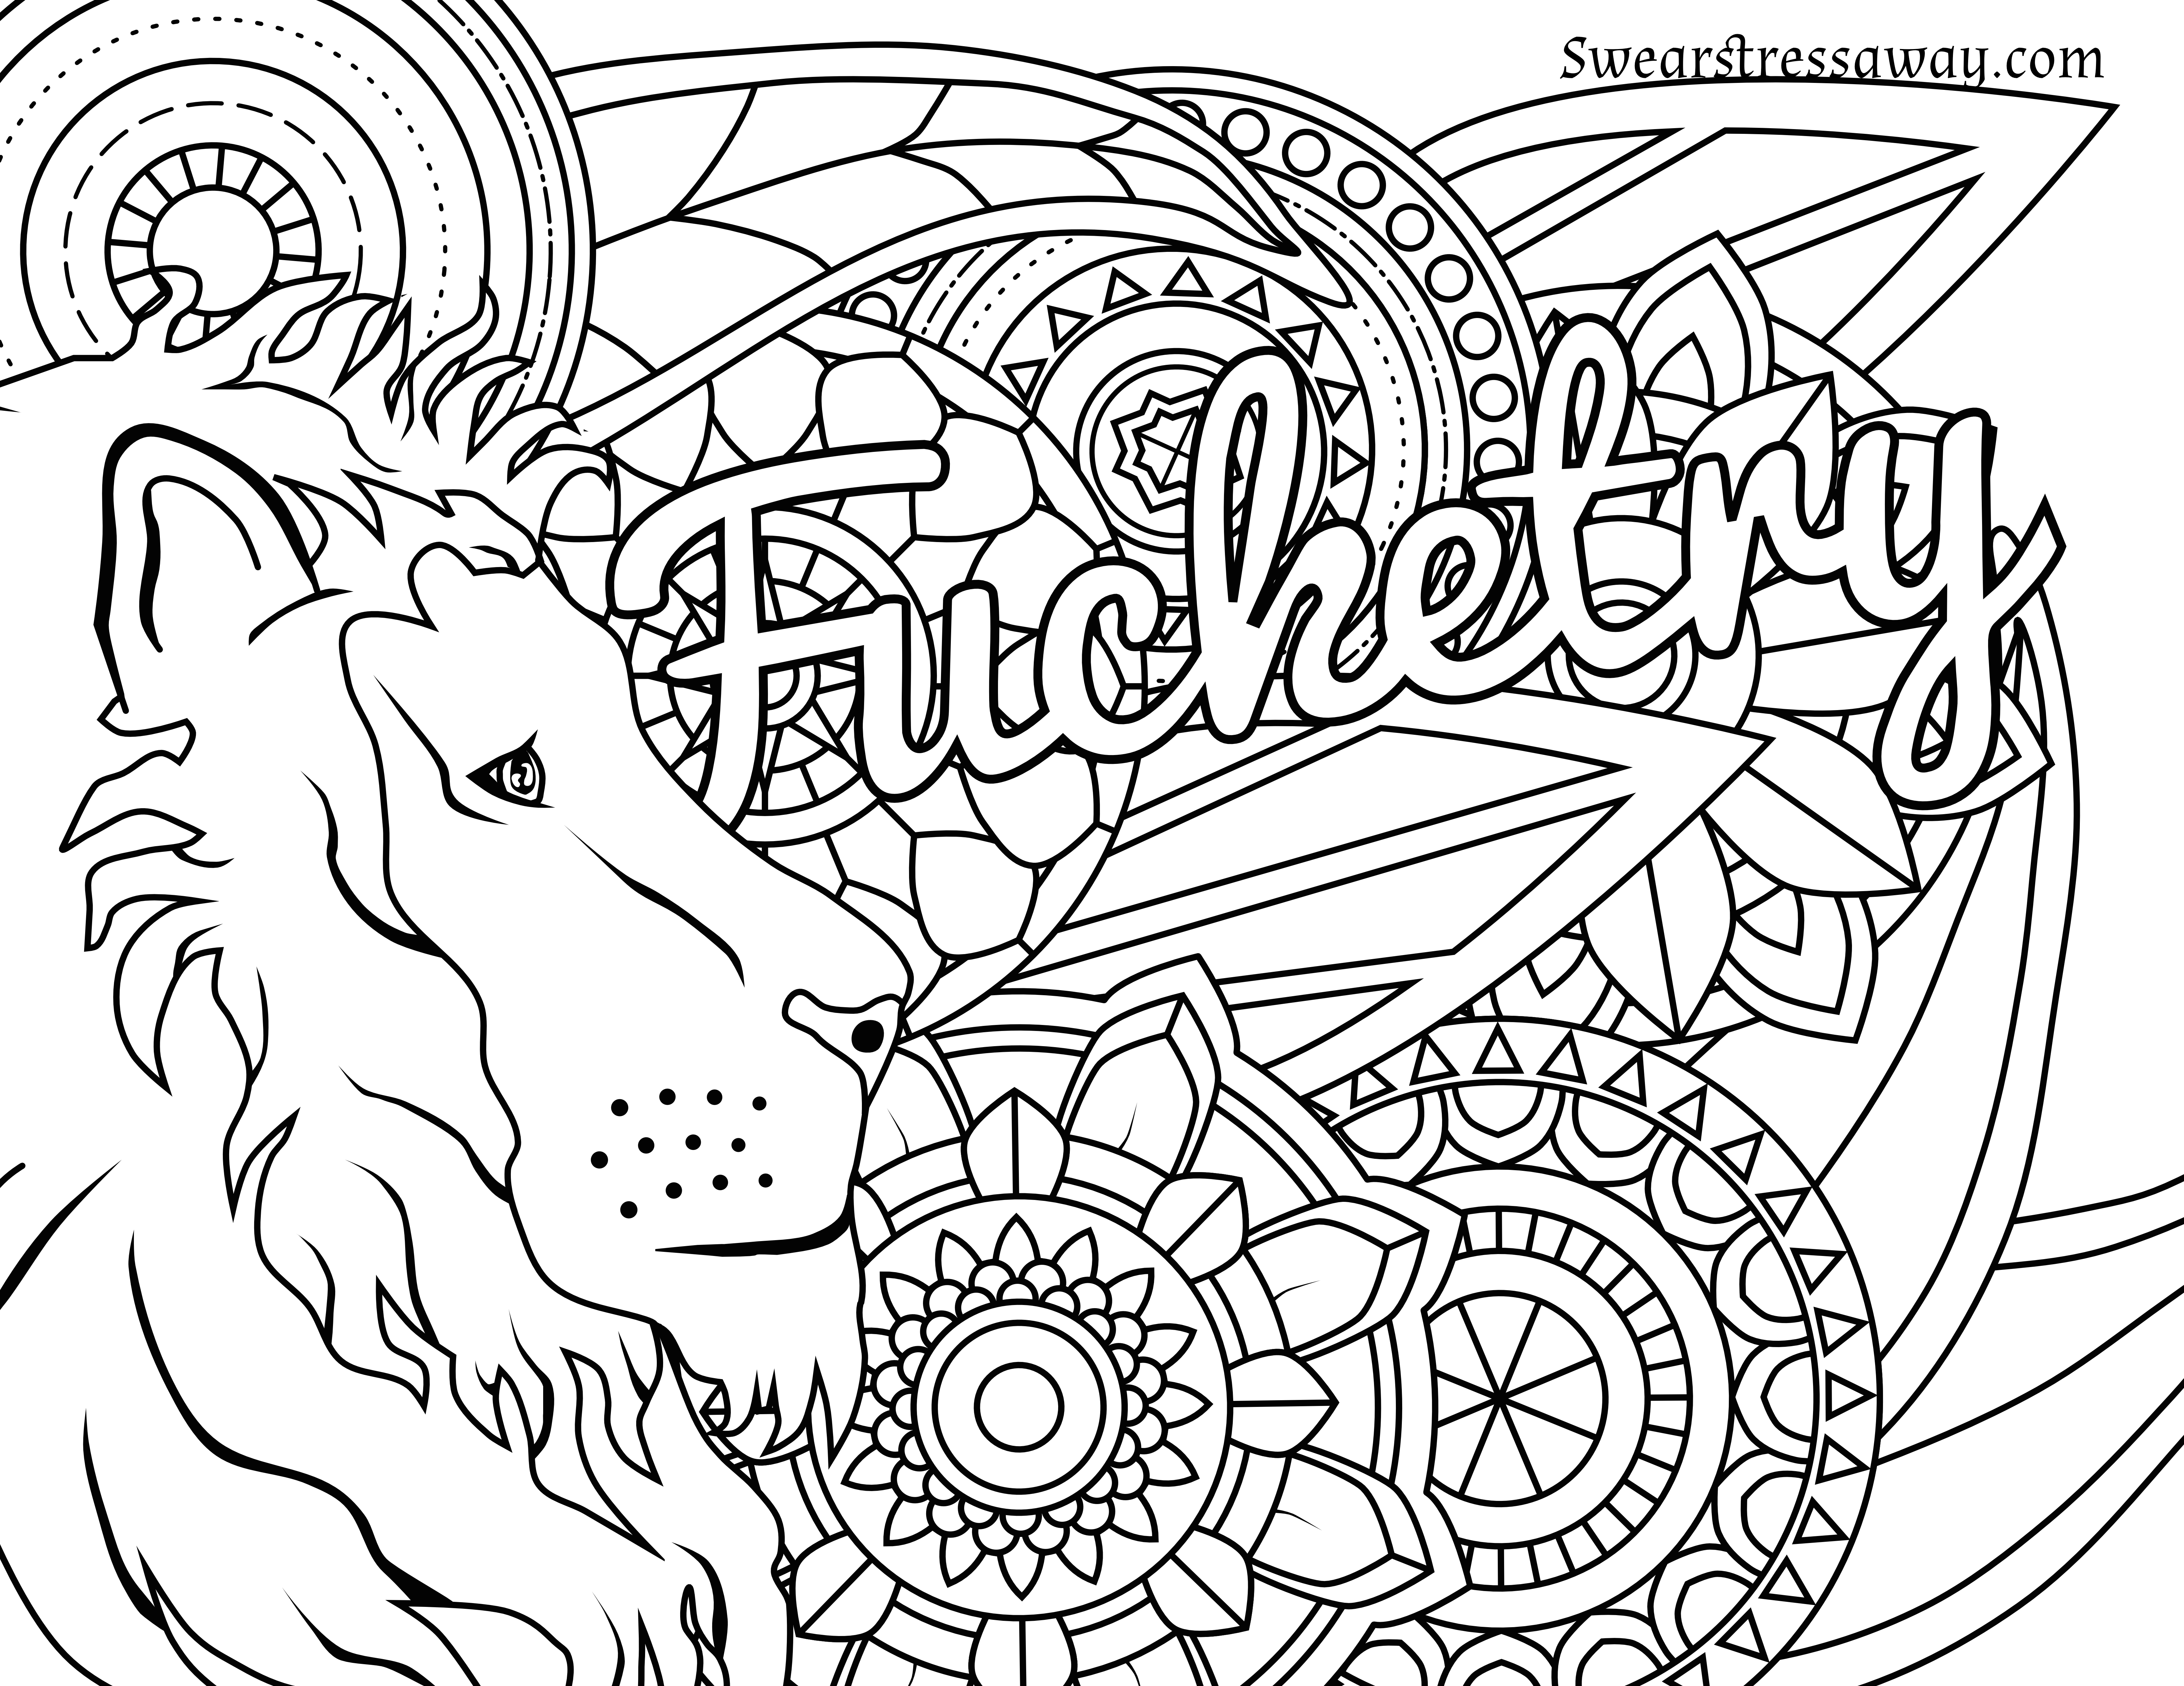 Curse Word Coloring Pages Free Printable At Getdrawings Com Free